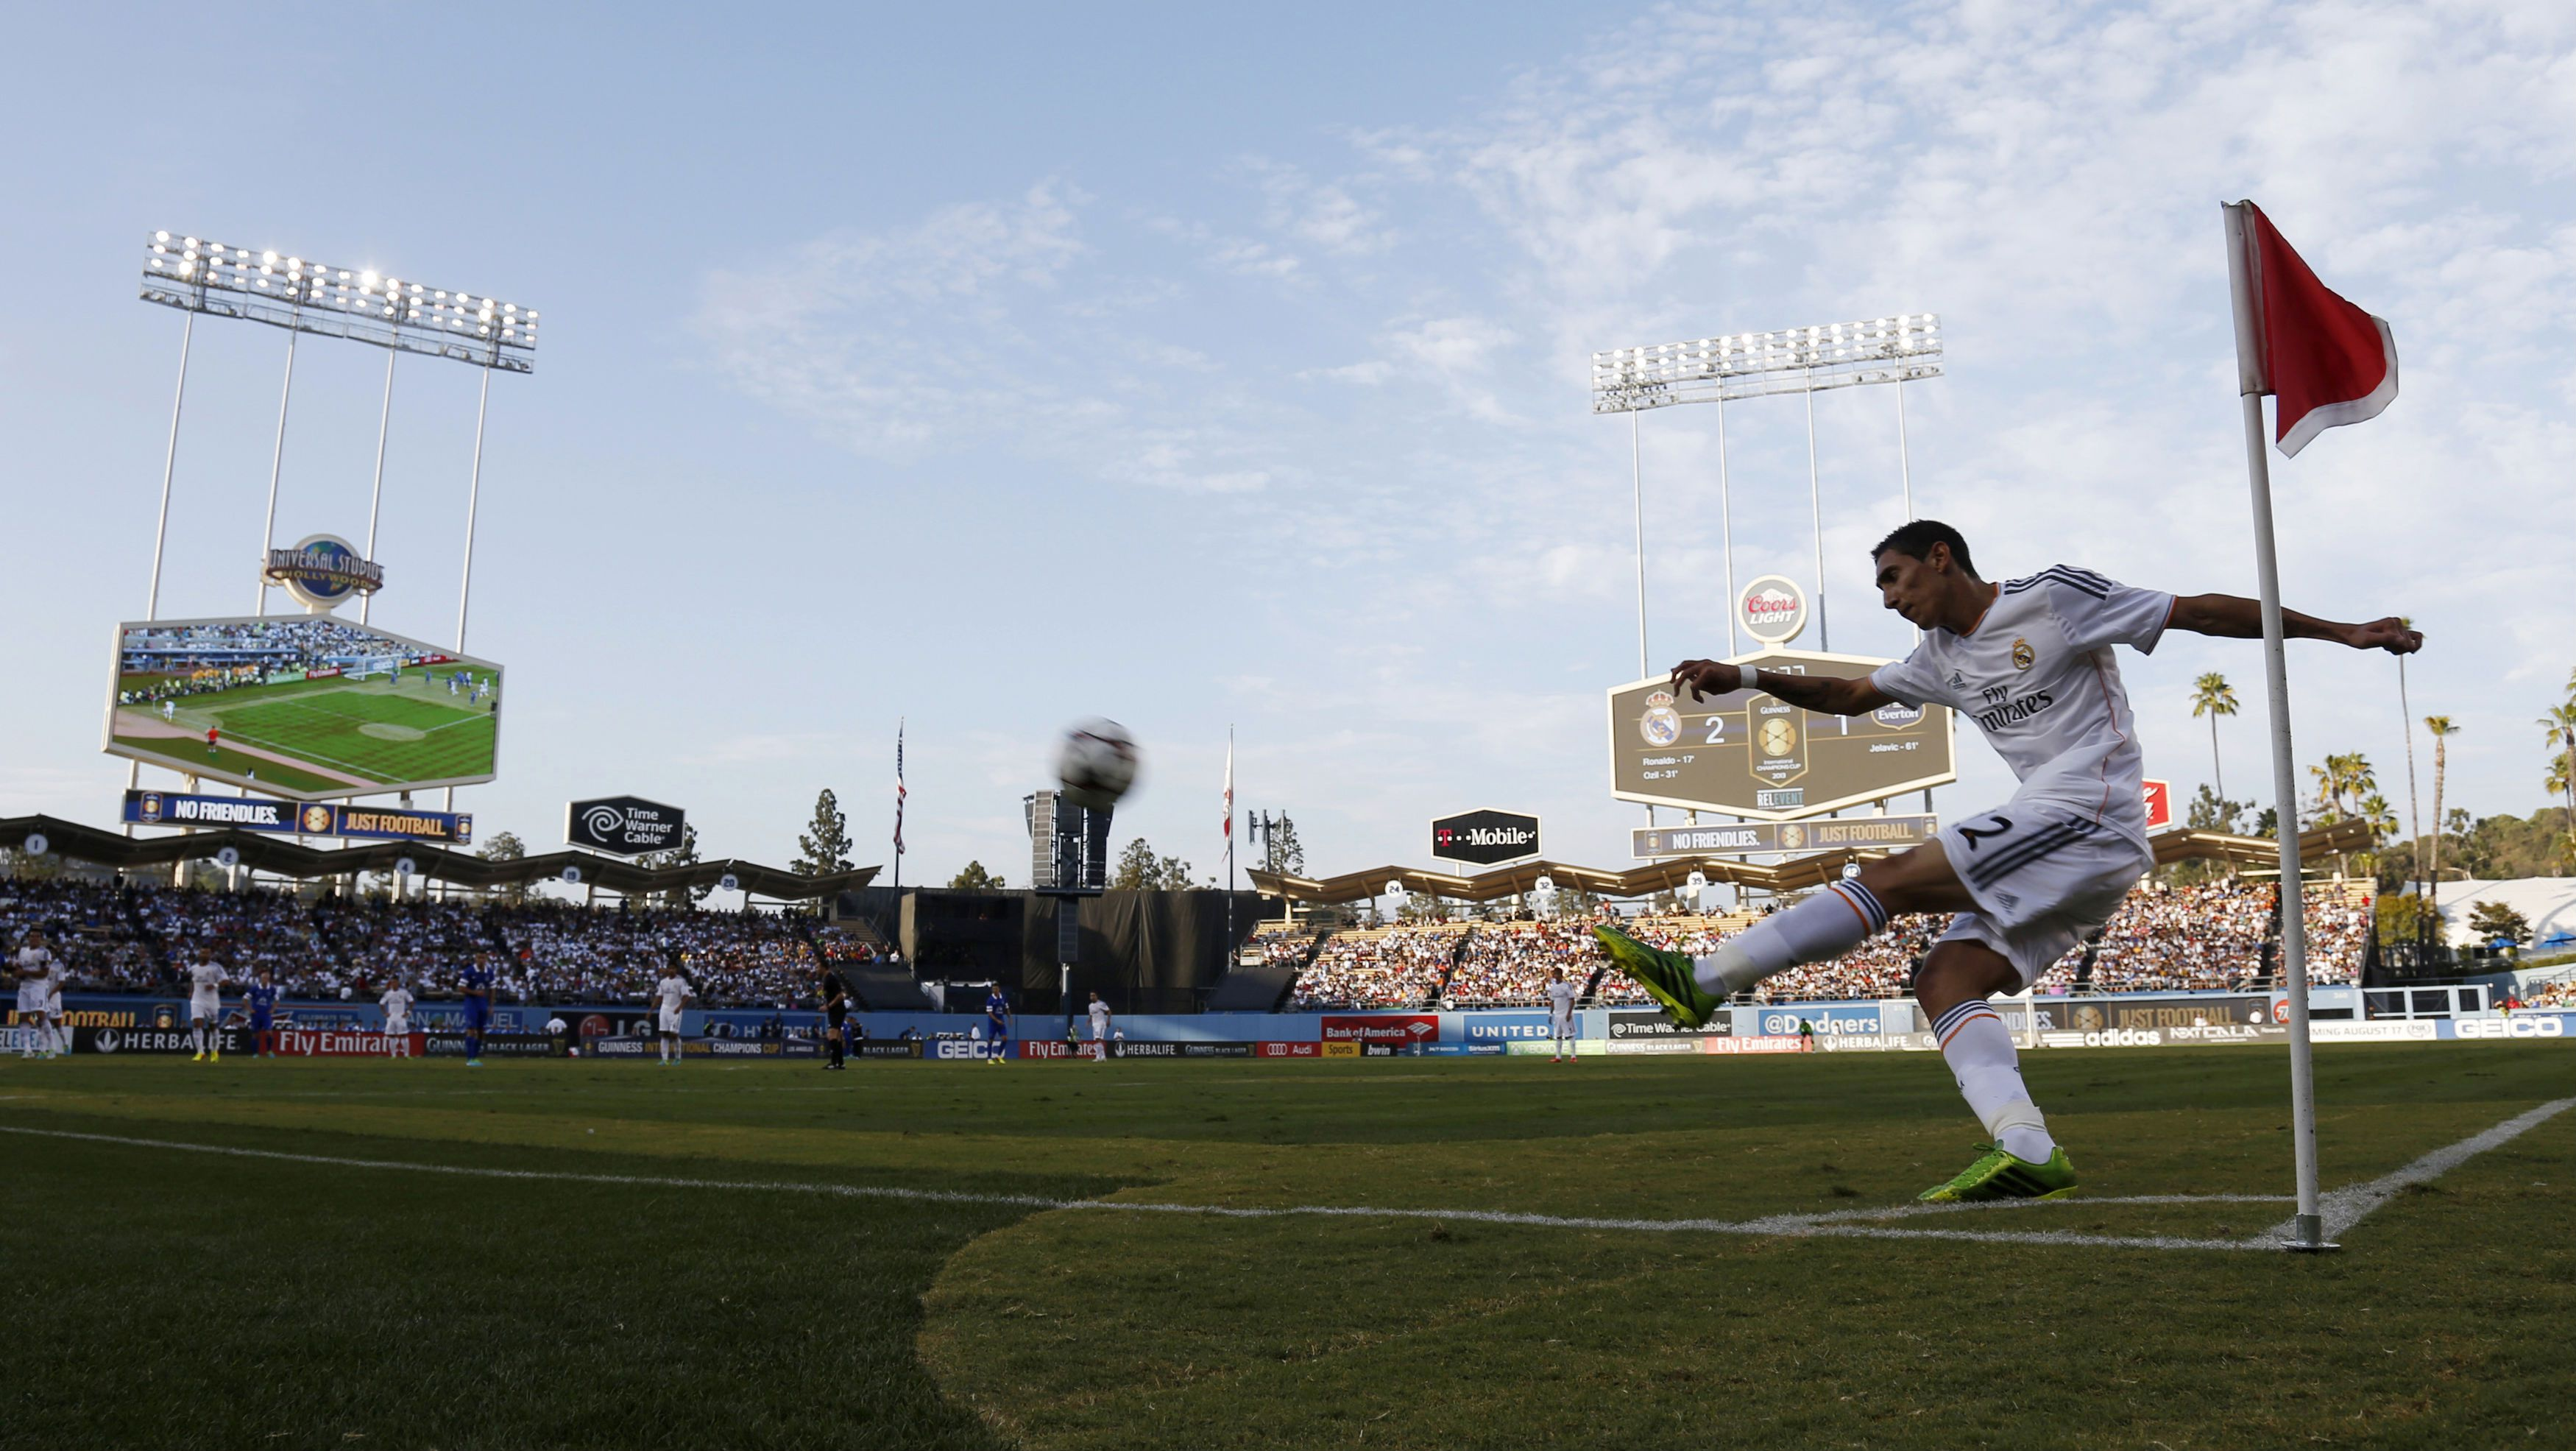 Angel Di Maria of Real Madrid takes a corner kick against Everton during their Guinness International Champions Cup soccer match at Dodger Stadium in Los Angeles, August 3, 2013. REUTERS/Danny Molosho